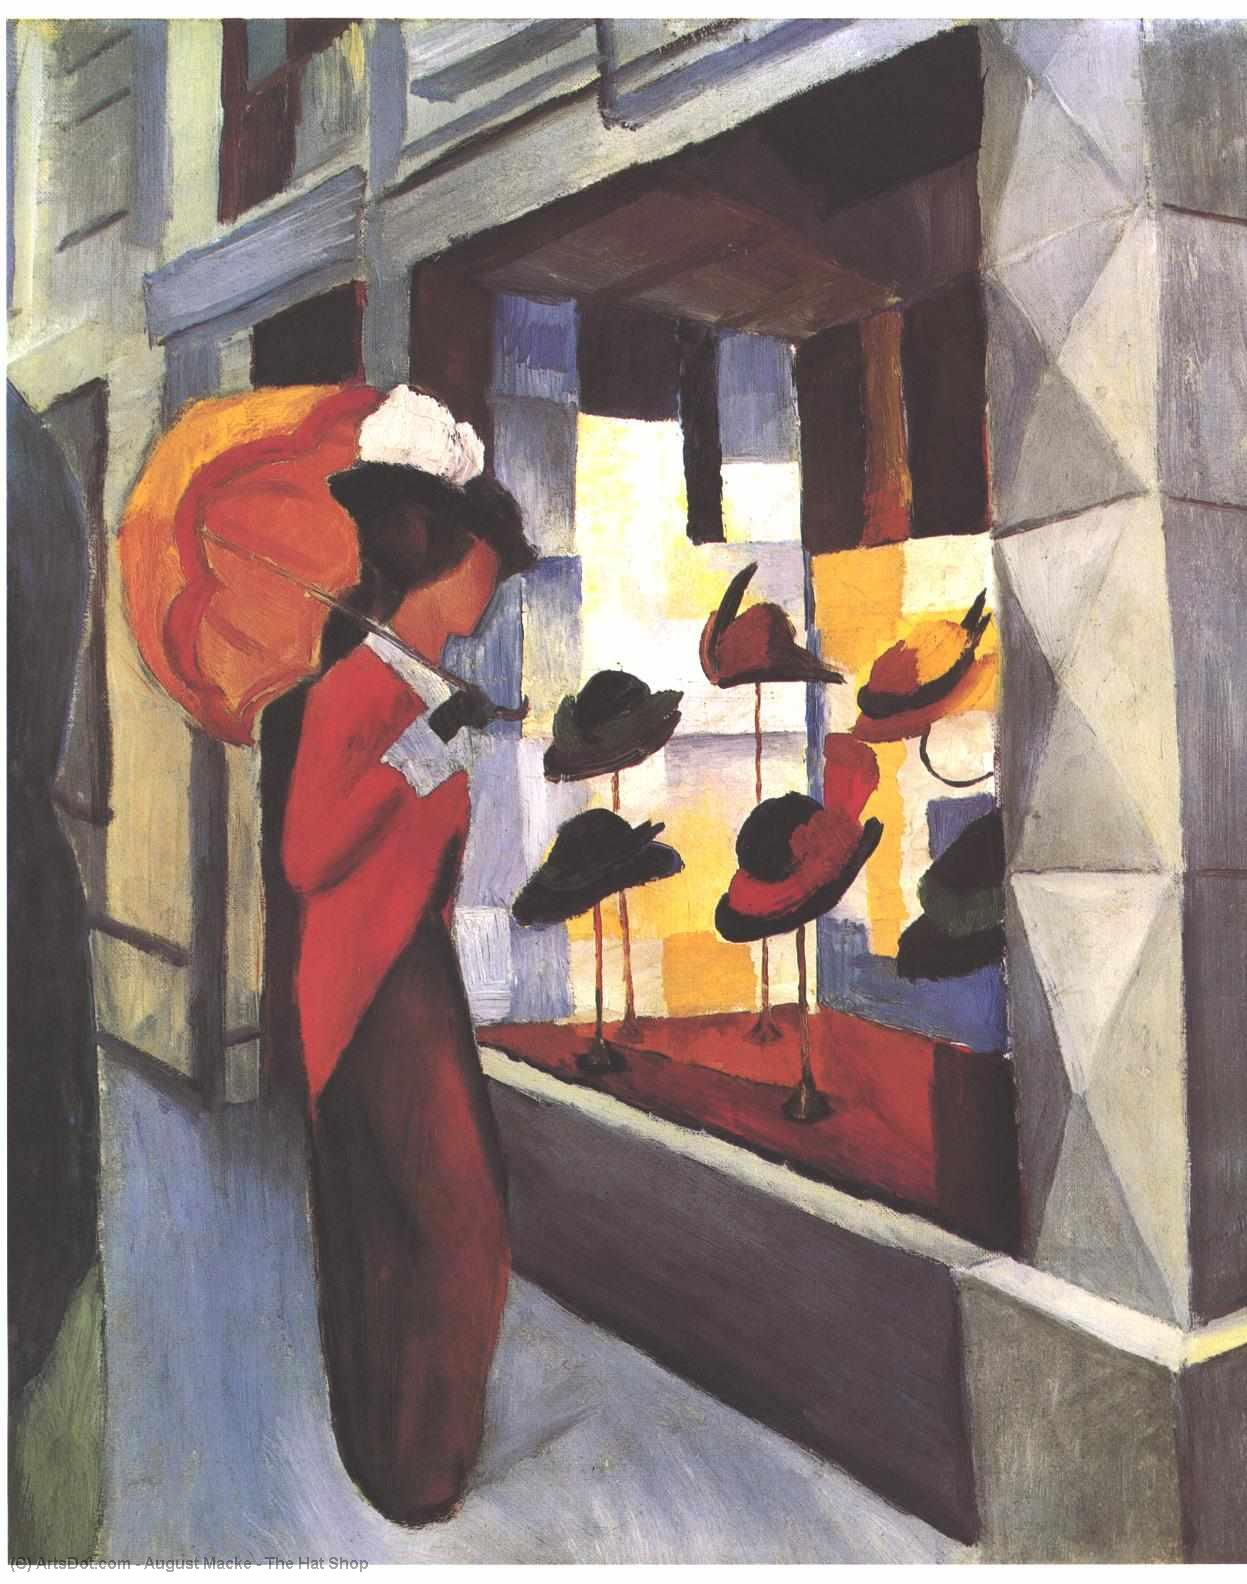 Wikioo.org - The Encyclopedia of Fine Arts - Painting, Artwork by August Macke - The Hat Shop